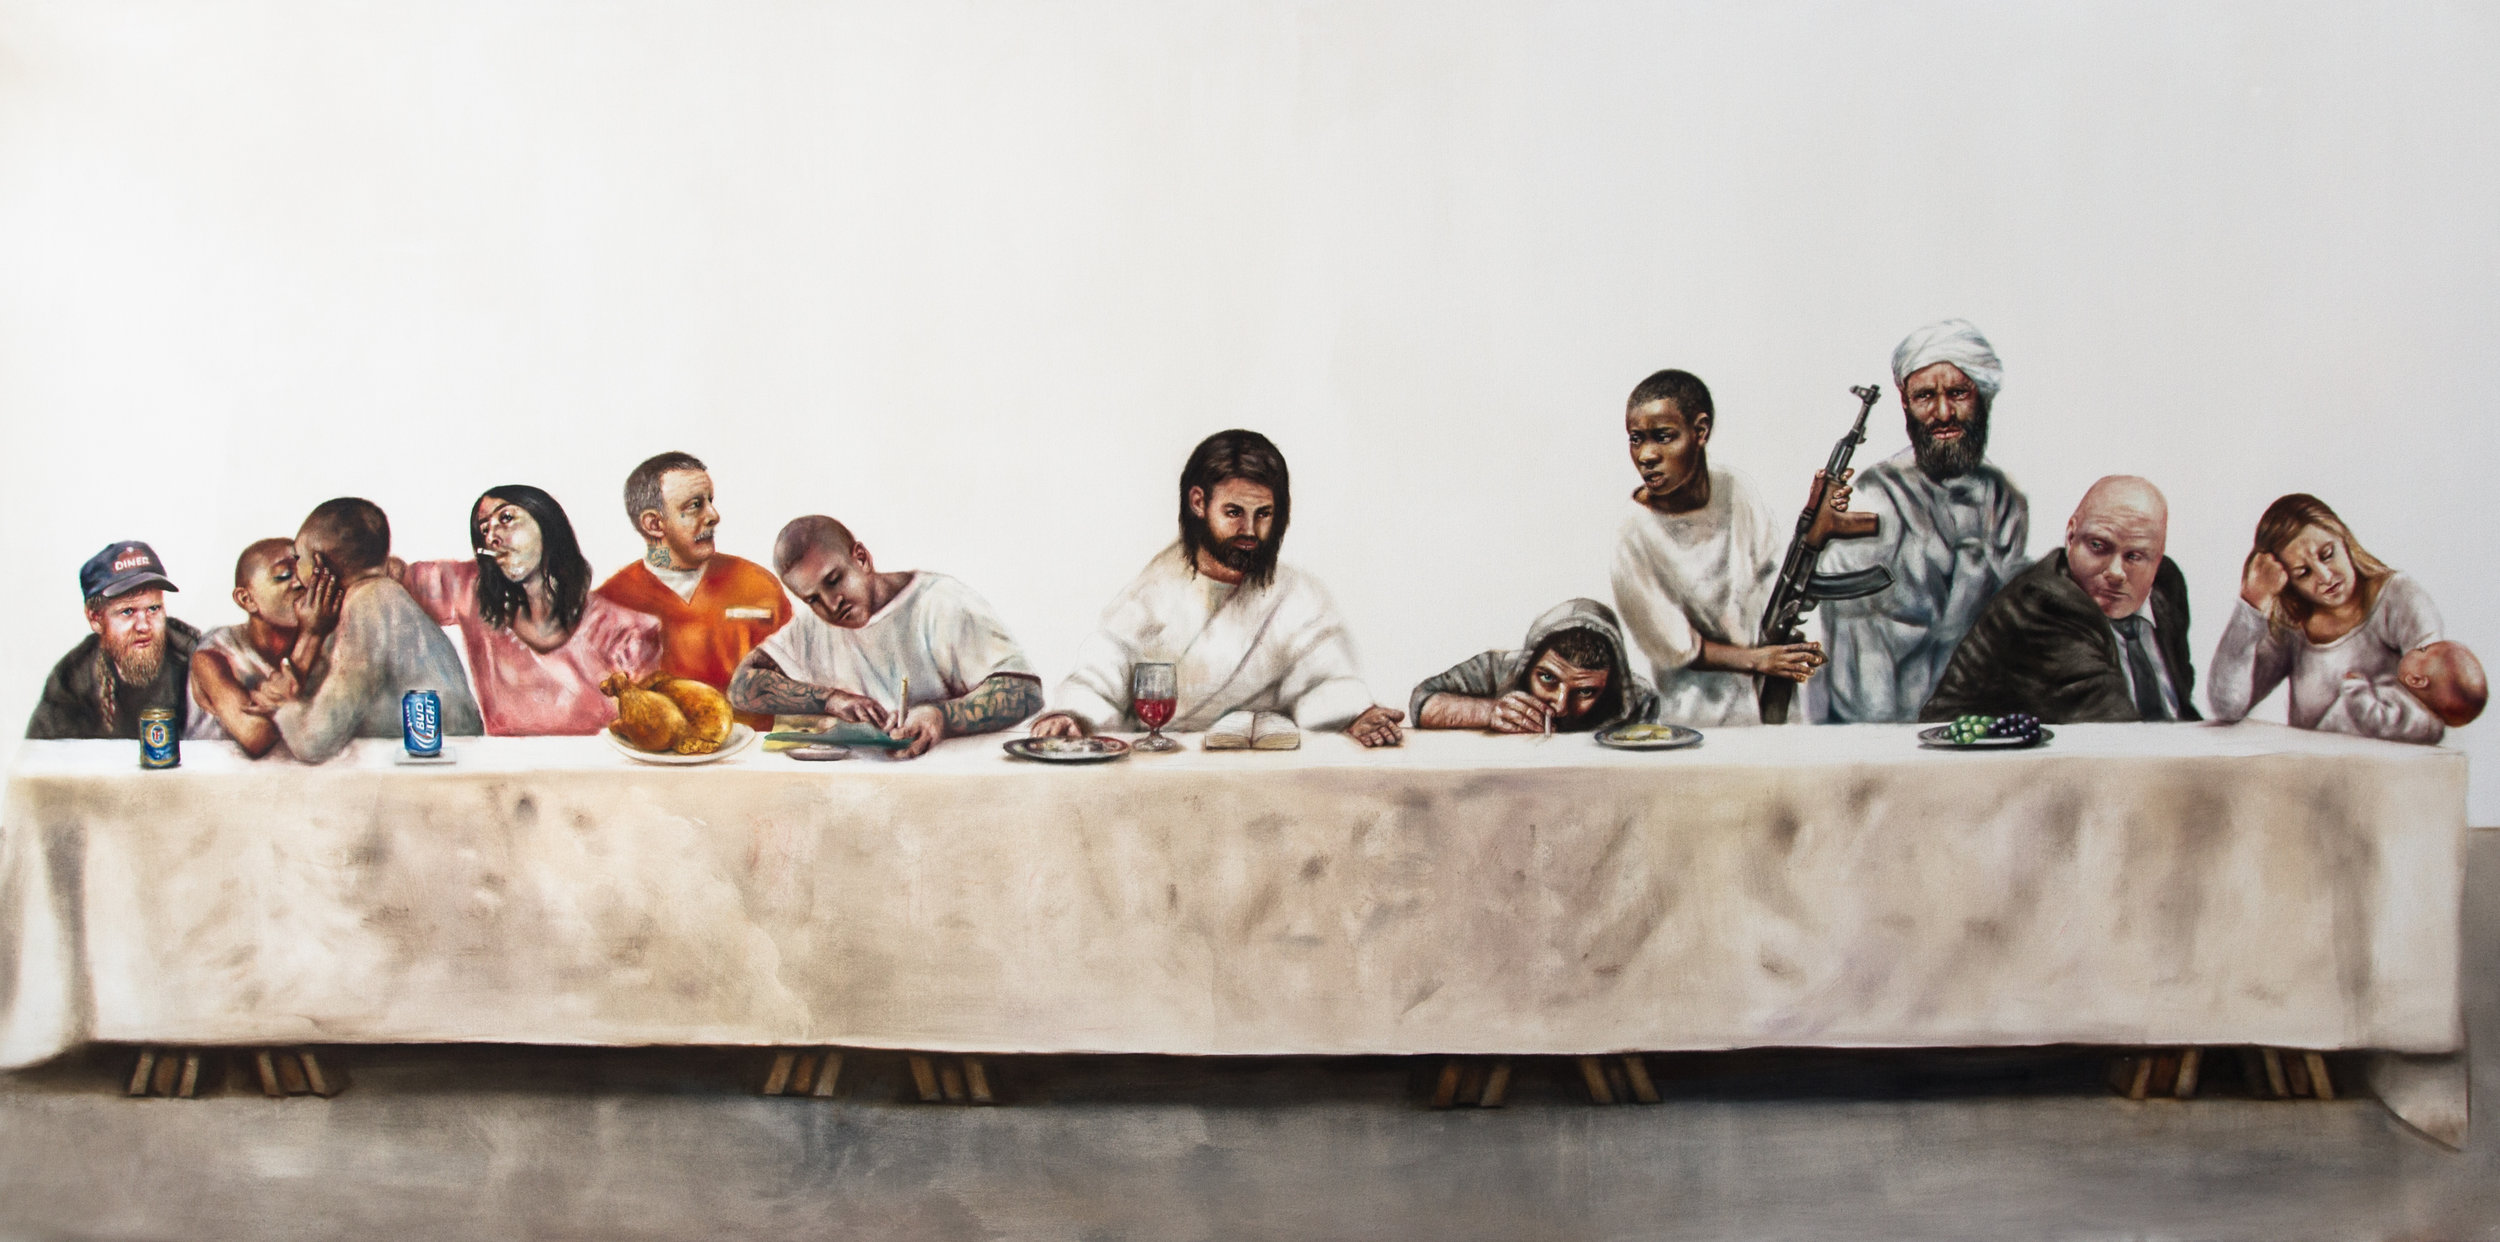 The Supper, available as giclee print from $144